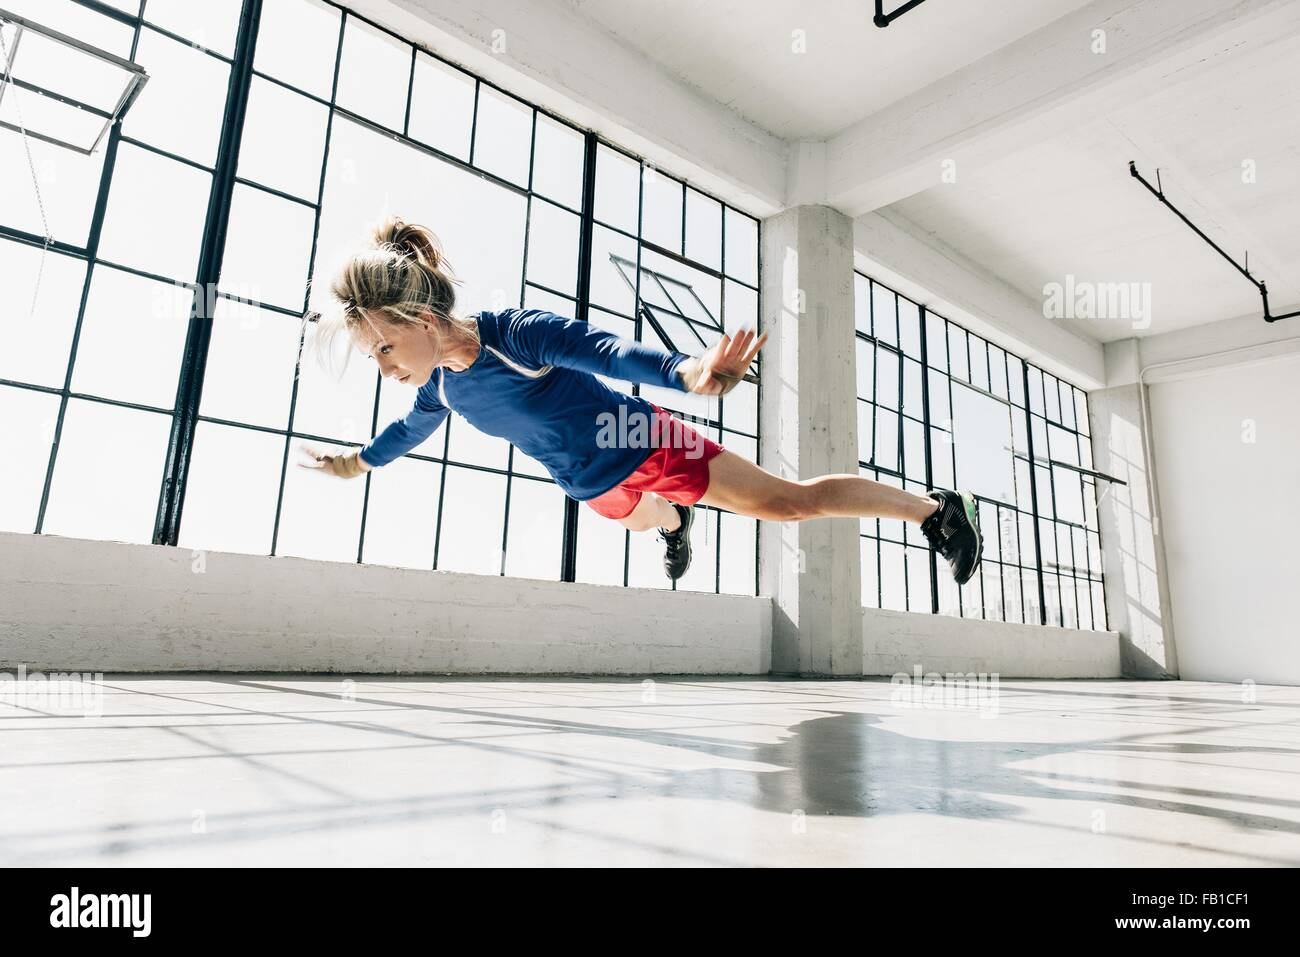 Low angle view of young woman in gym doing mid air push up - Stock Image